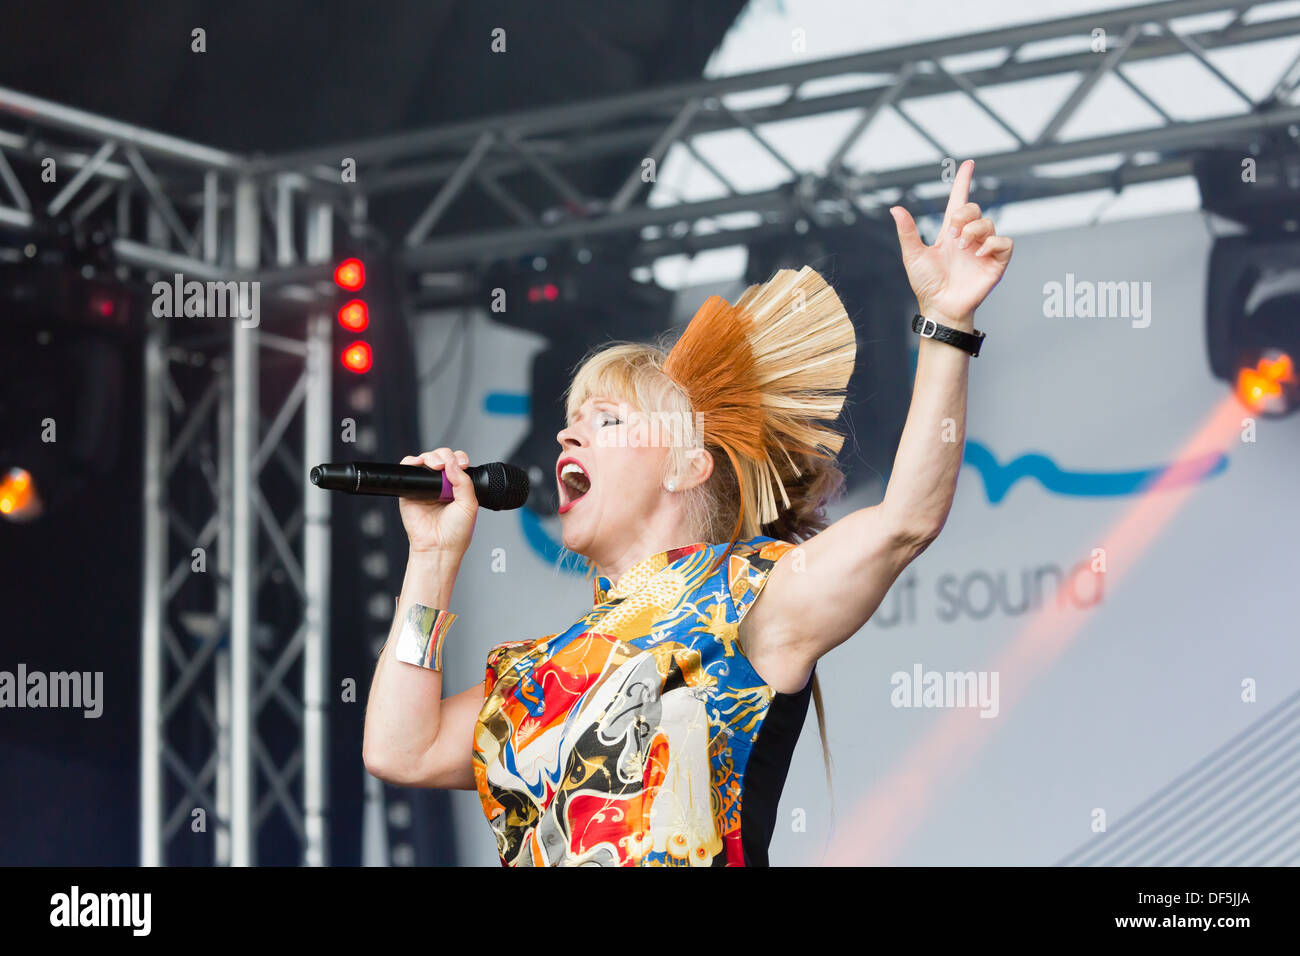 Toyah Wilcox with one hand in the air, singing at the Newcastle Pride event, July 2013 in Newcastle on Tyne. - Stock Image